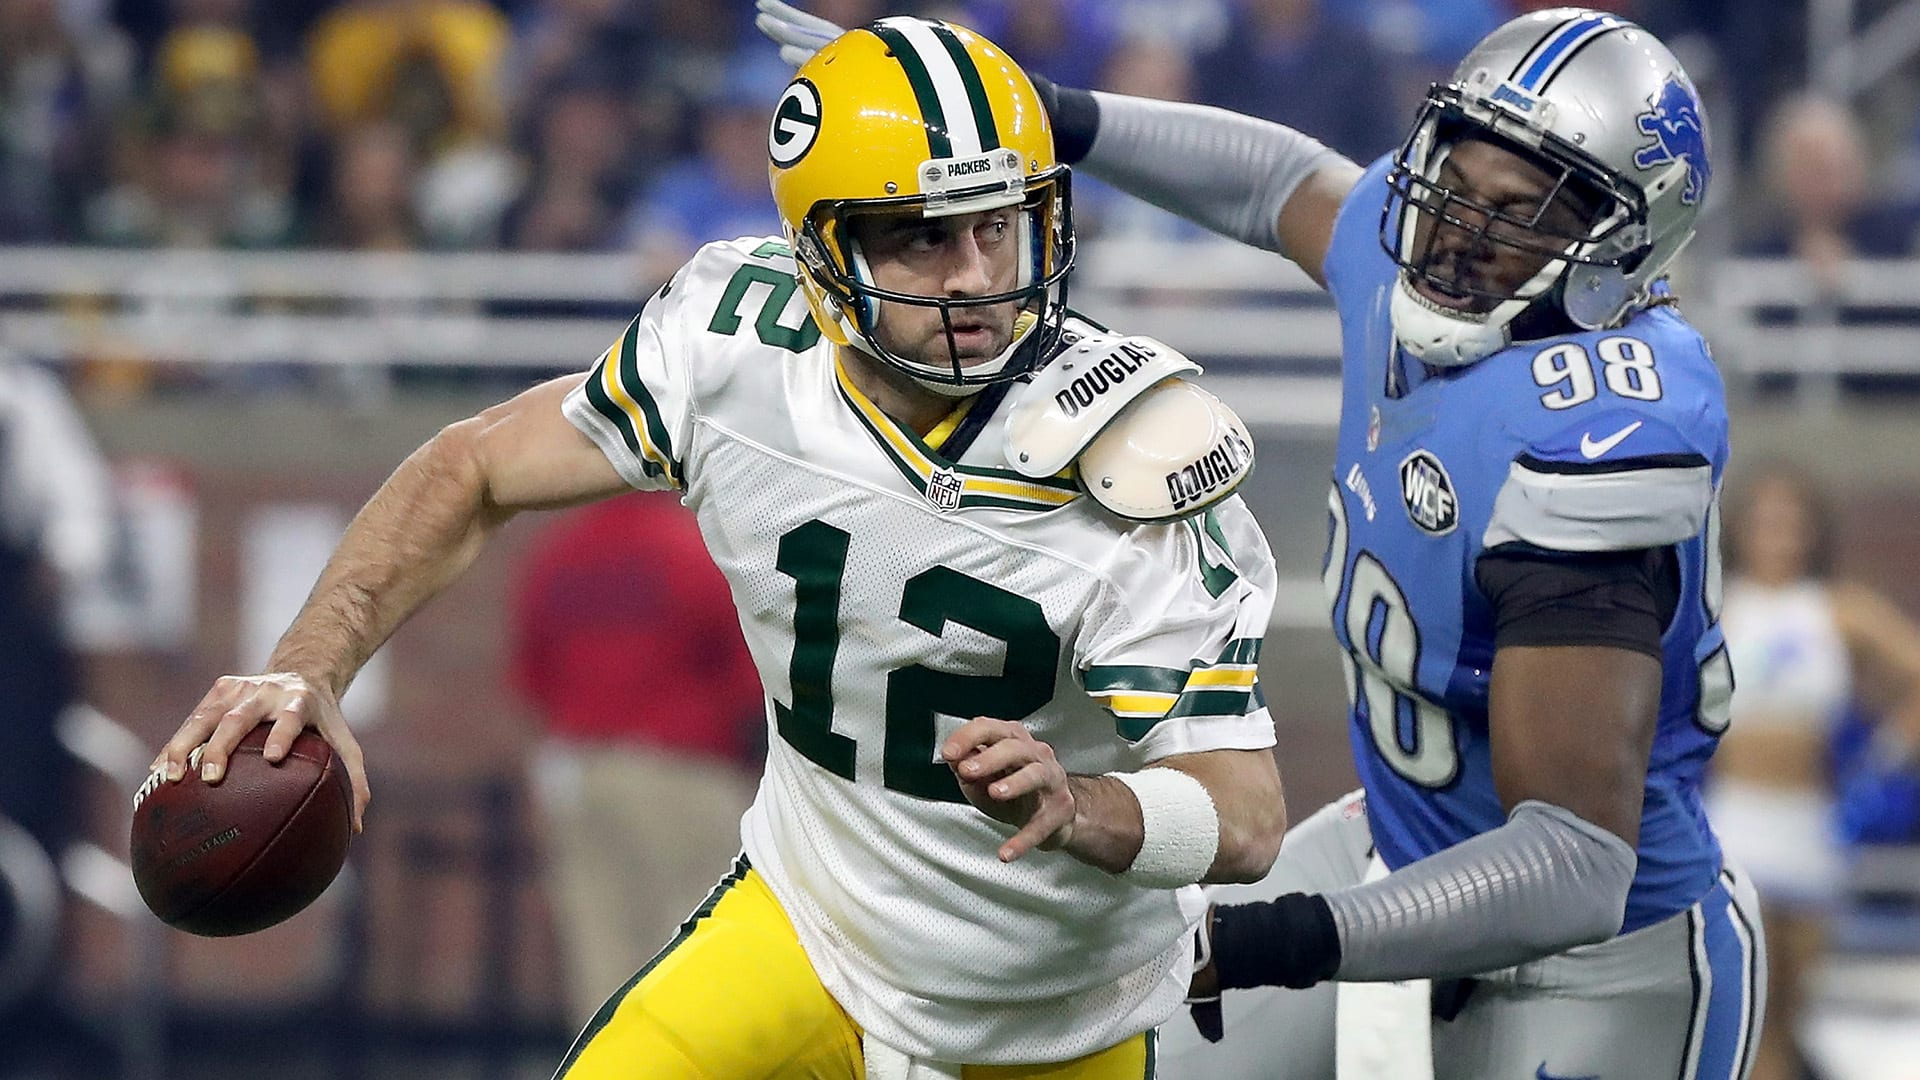 Lions vs Packers Predictions and Odds